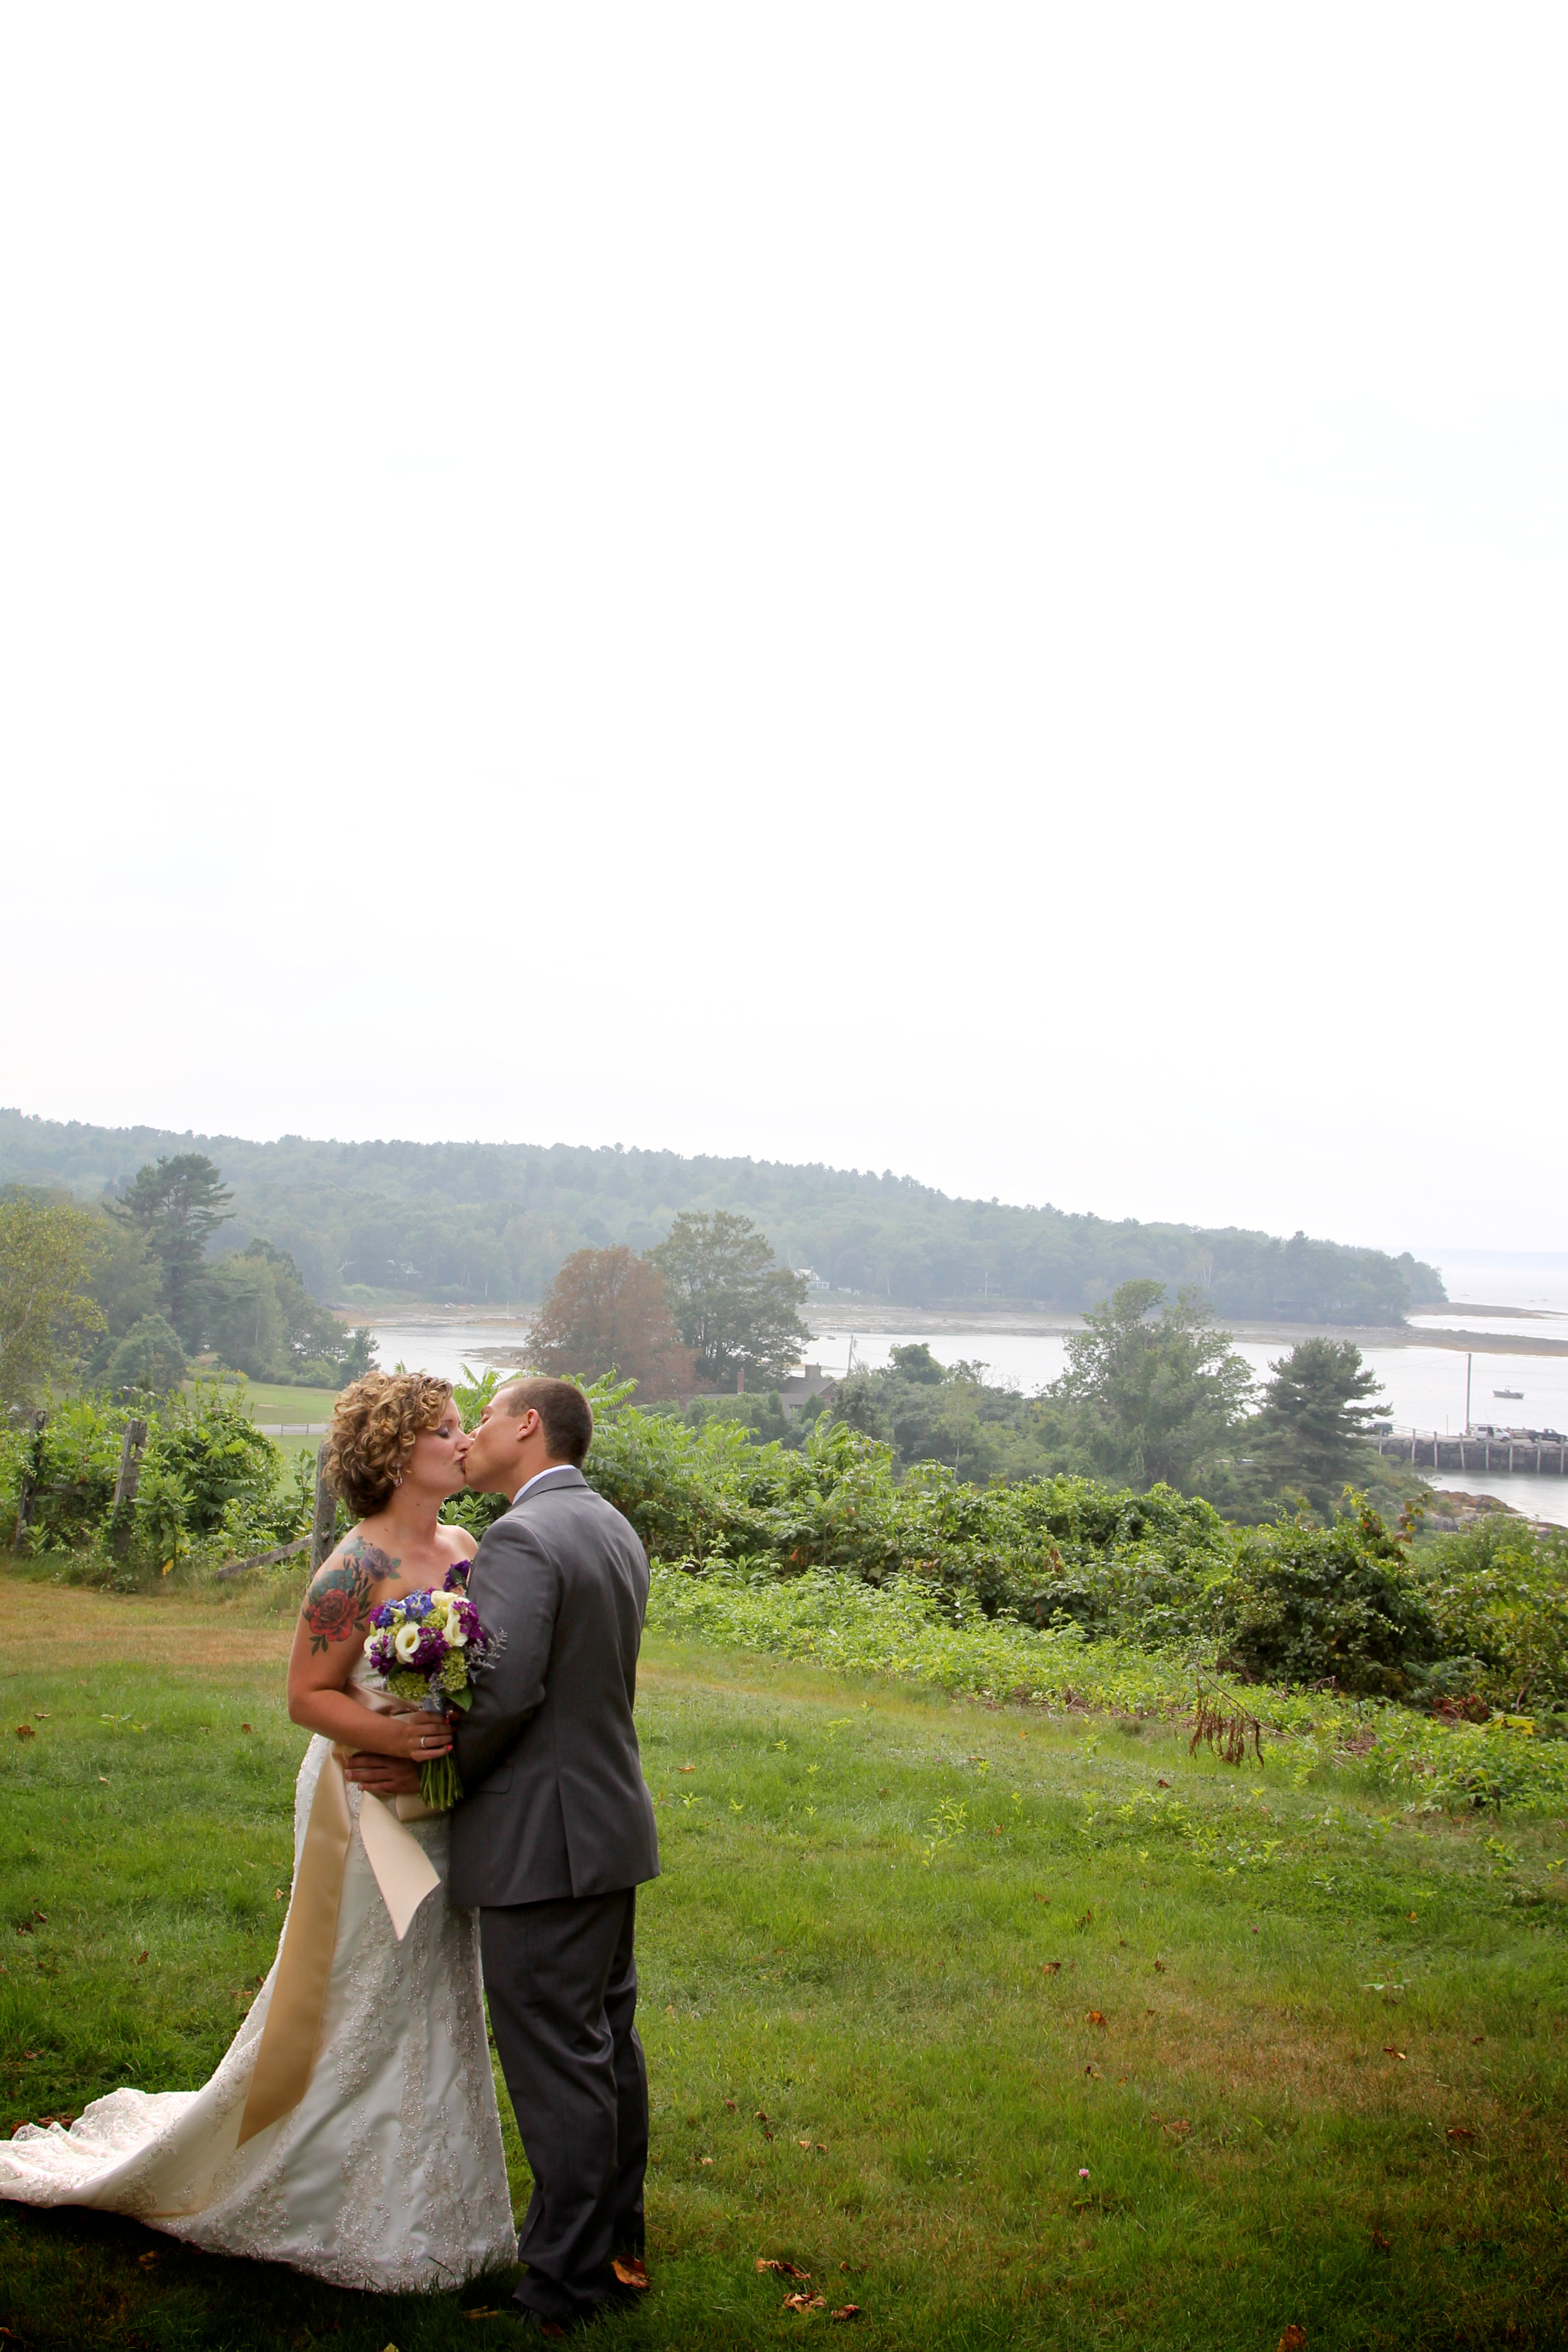 Jillian+and+Alex++210-2868446884-O.jpg